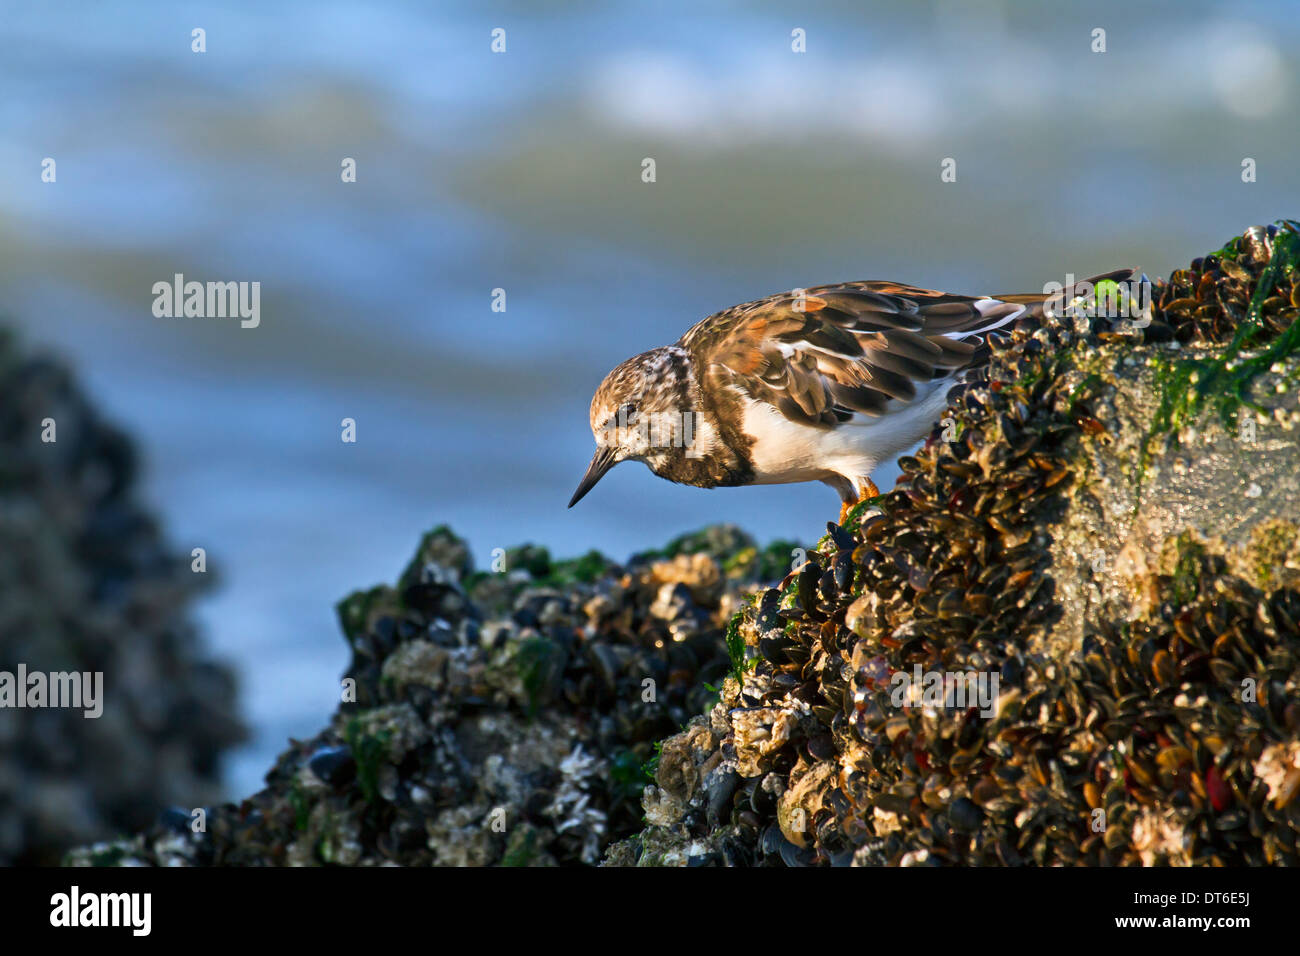 Ruddy Turnstone (Arenaria interpres) foraging on mussel bed at low tide along the North Sea coast - Stock Image